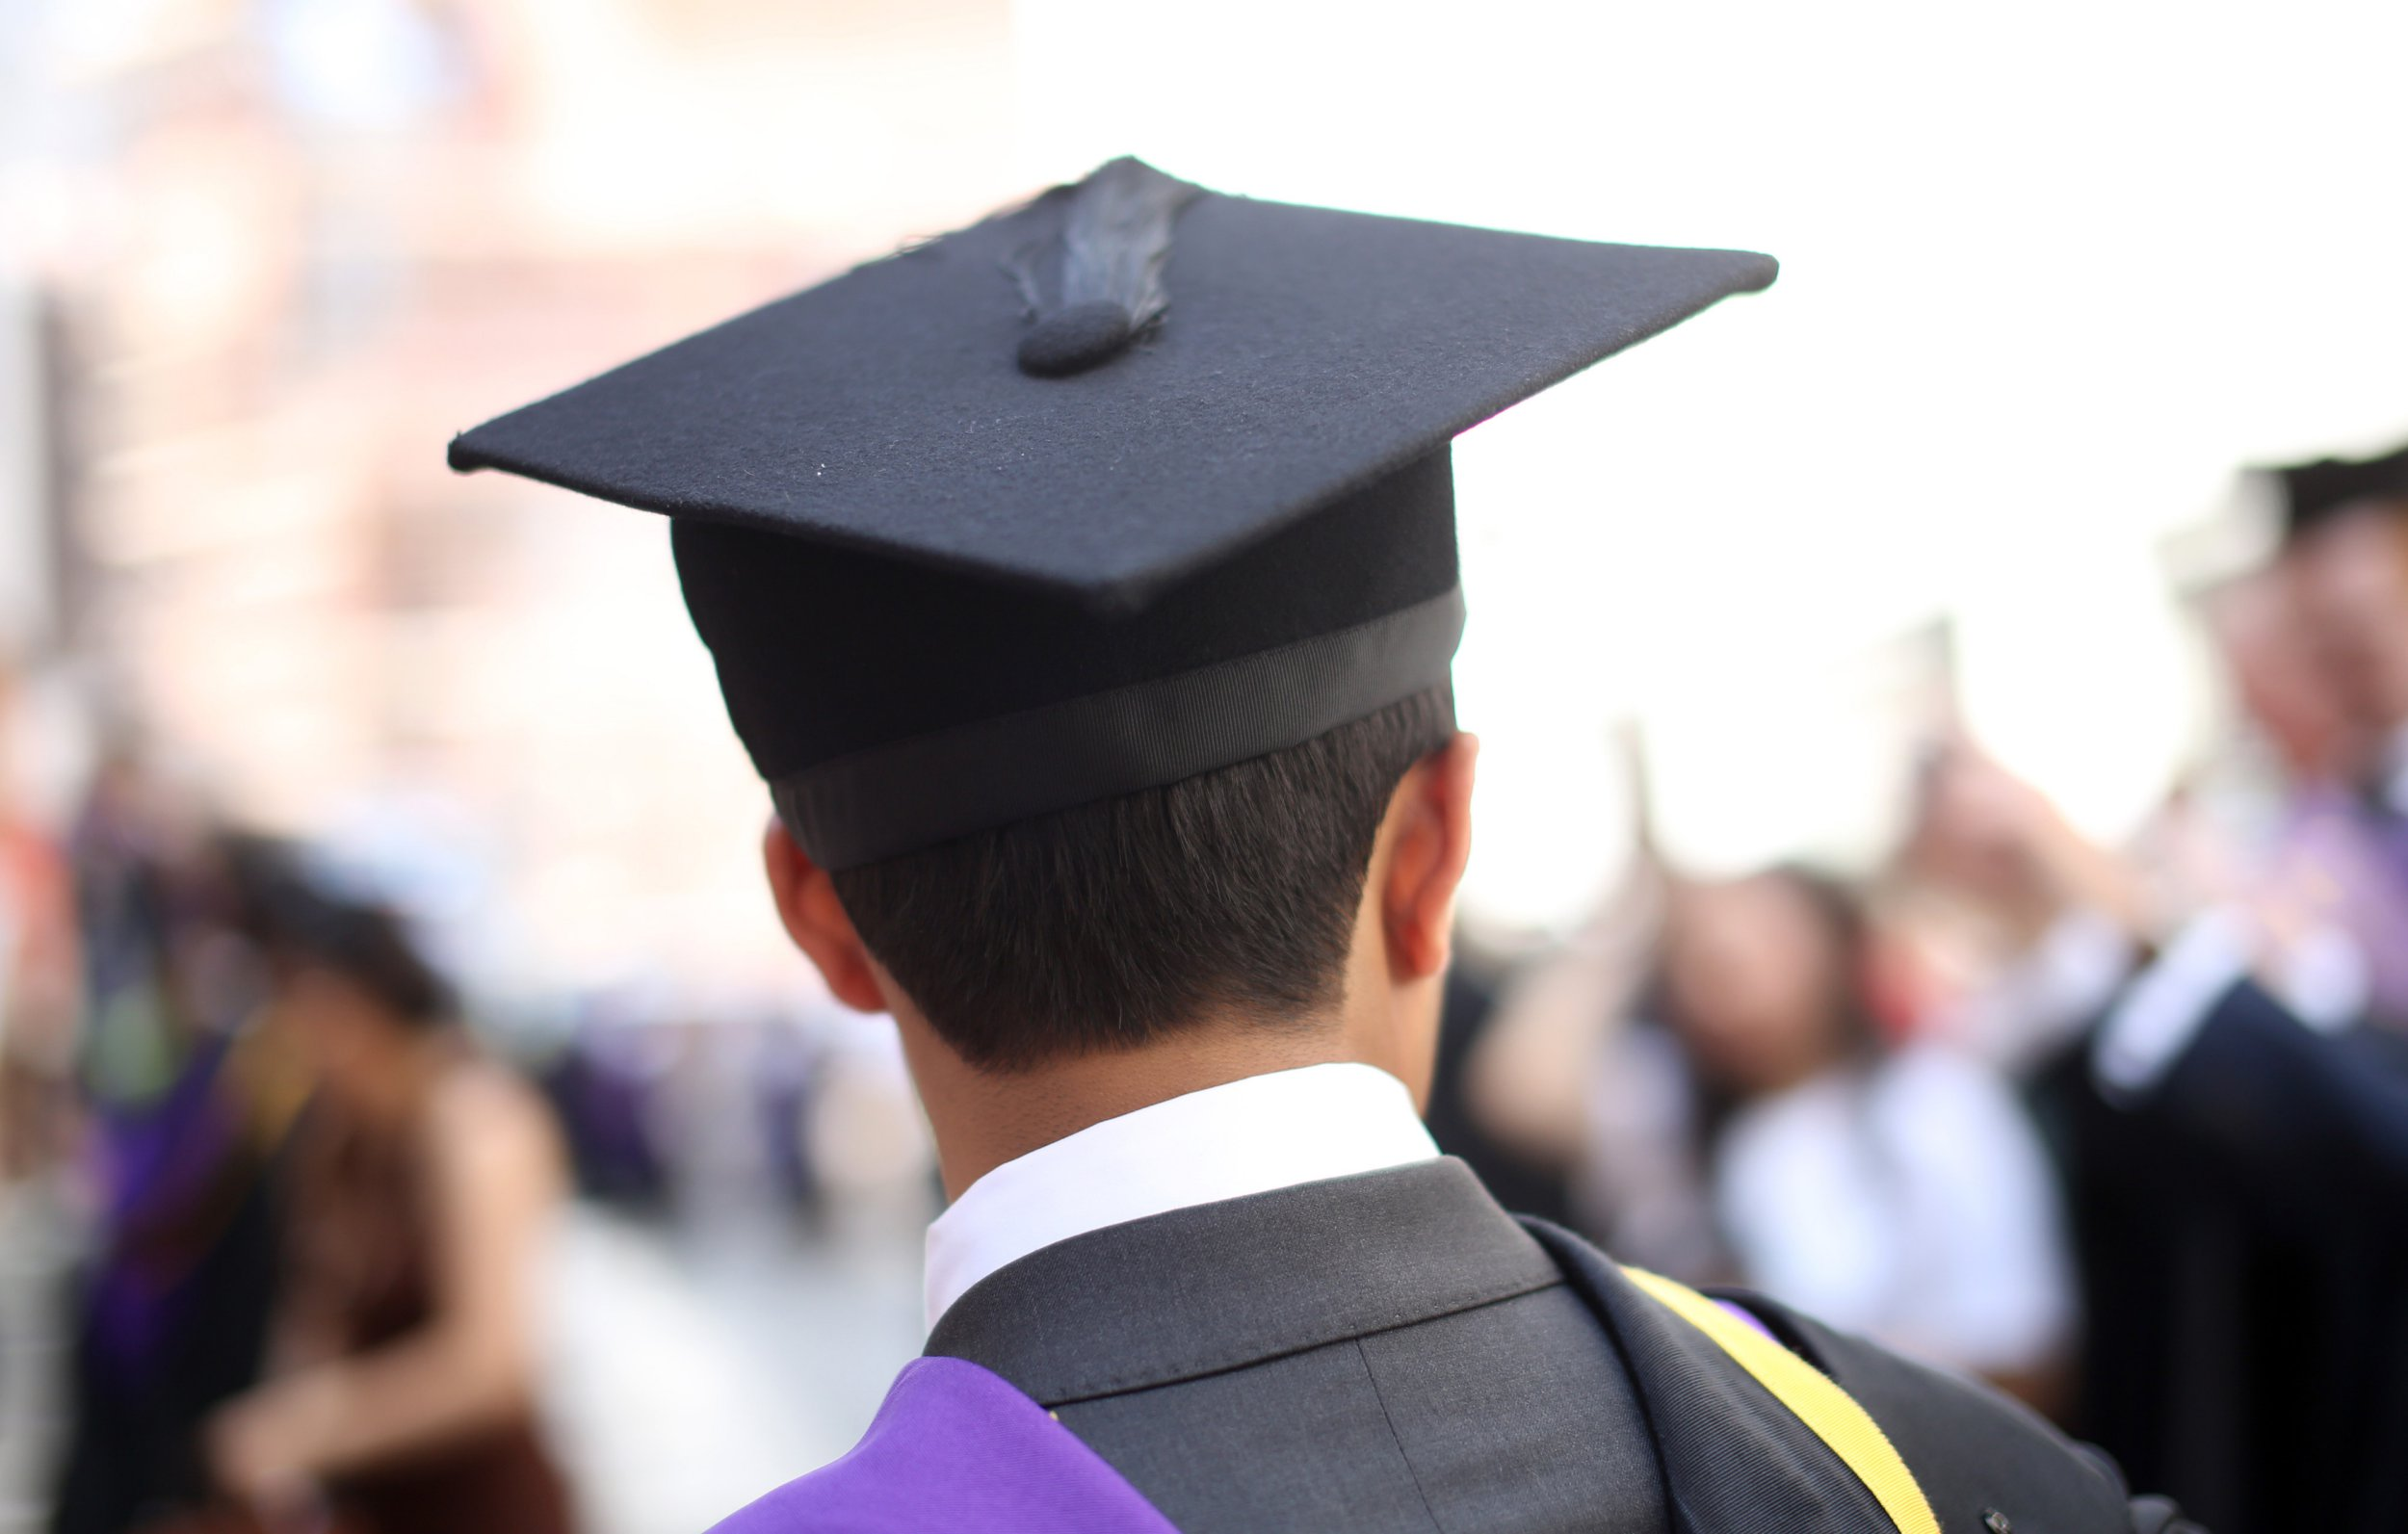 Tuition fees is causing working class students to quit uni